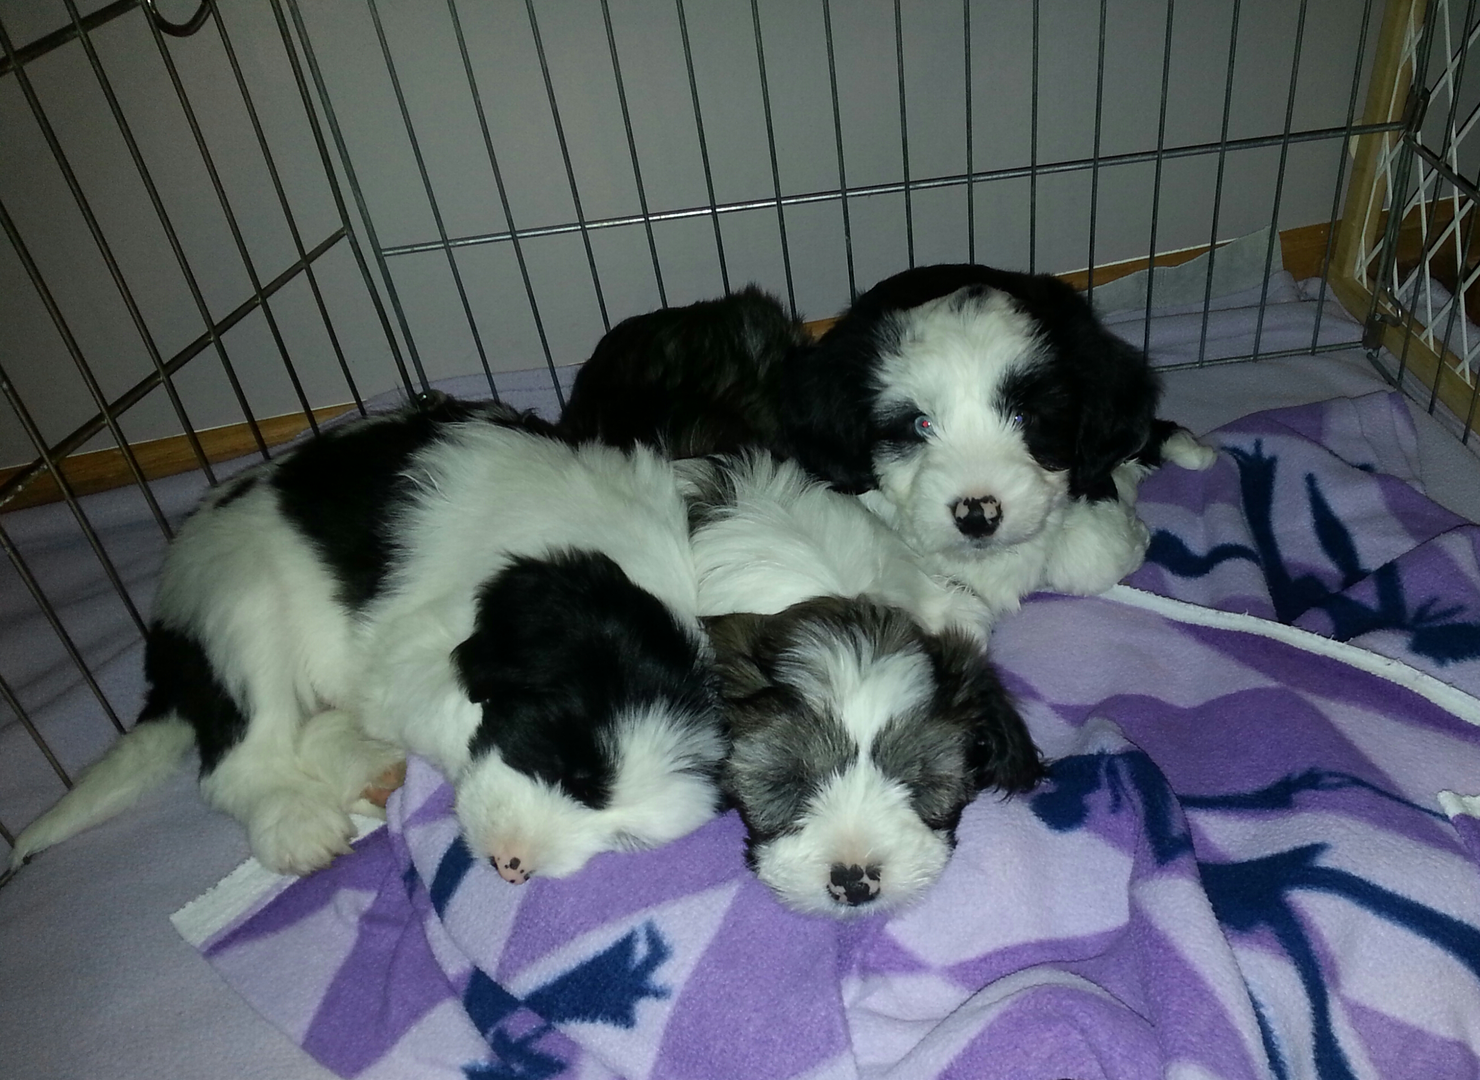 Tibetan Terrier Puppies For Sale Minneapolis Mn Terrier Puppies Puppies Tibetan Terrier